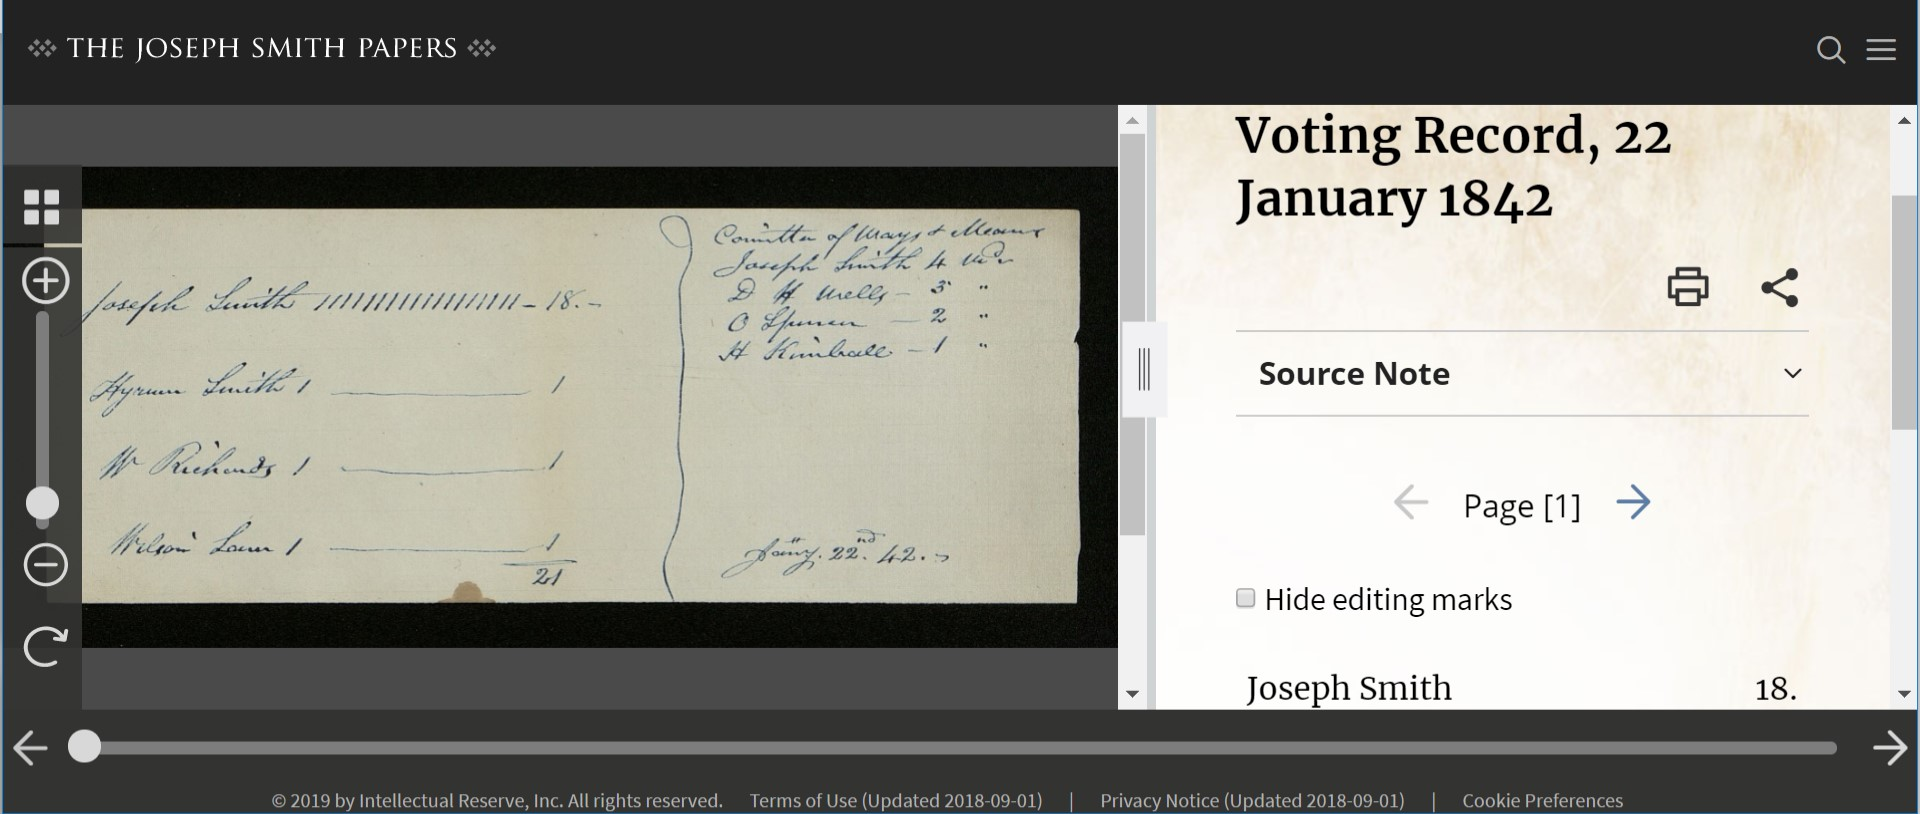 Voting Record, 22 January 1842